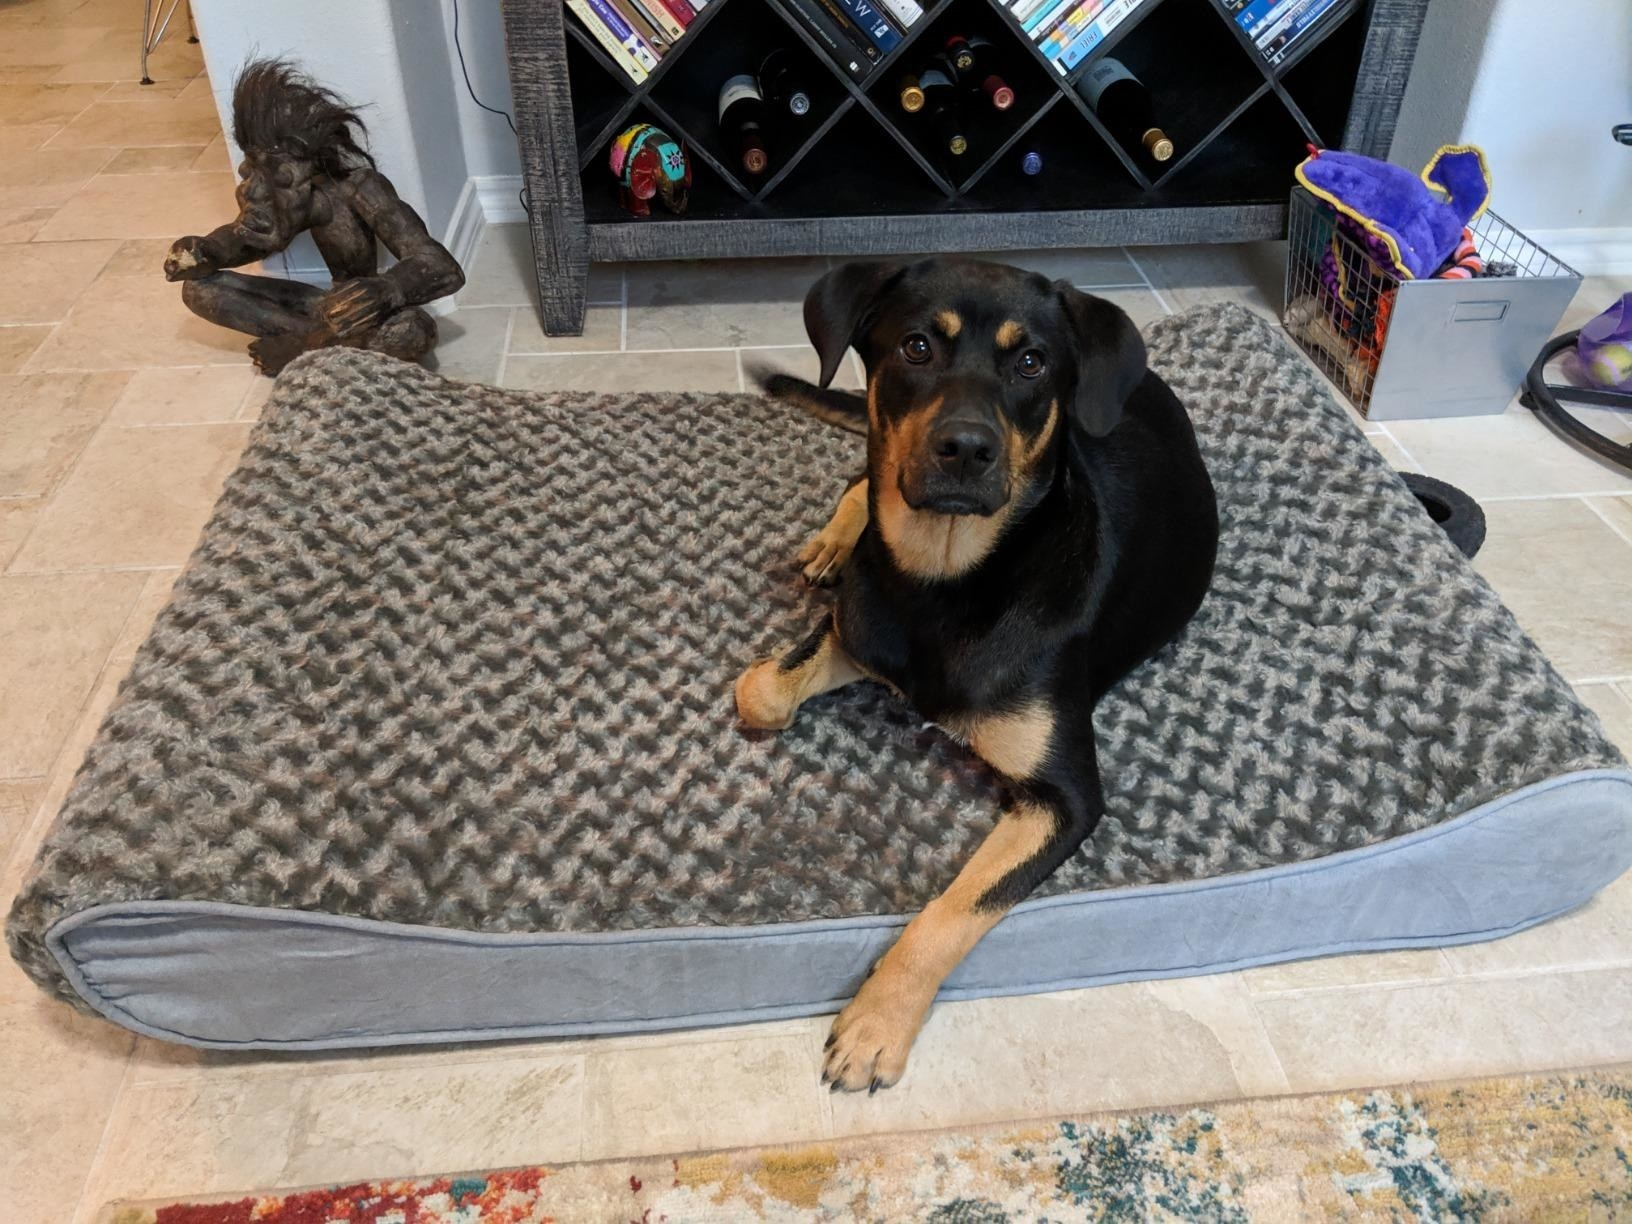 reviewer showing their dog on the large dog bed